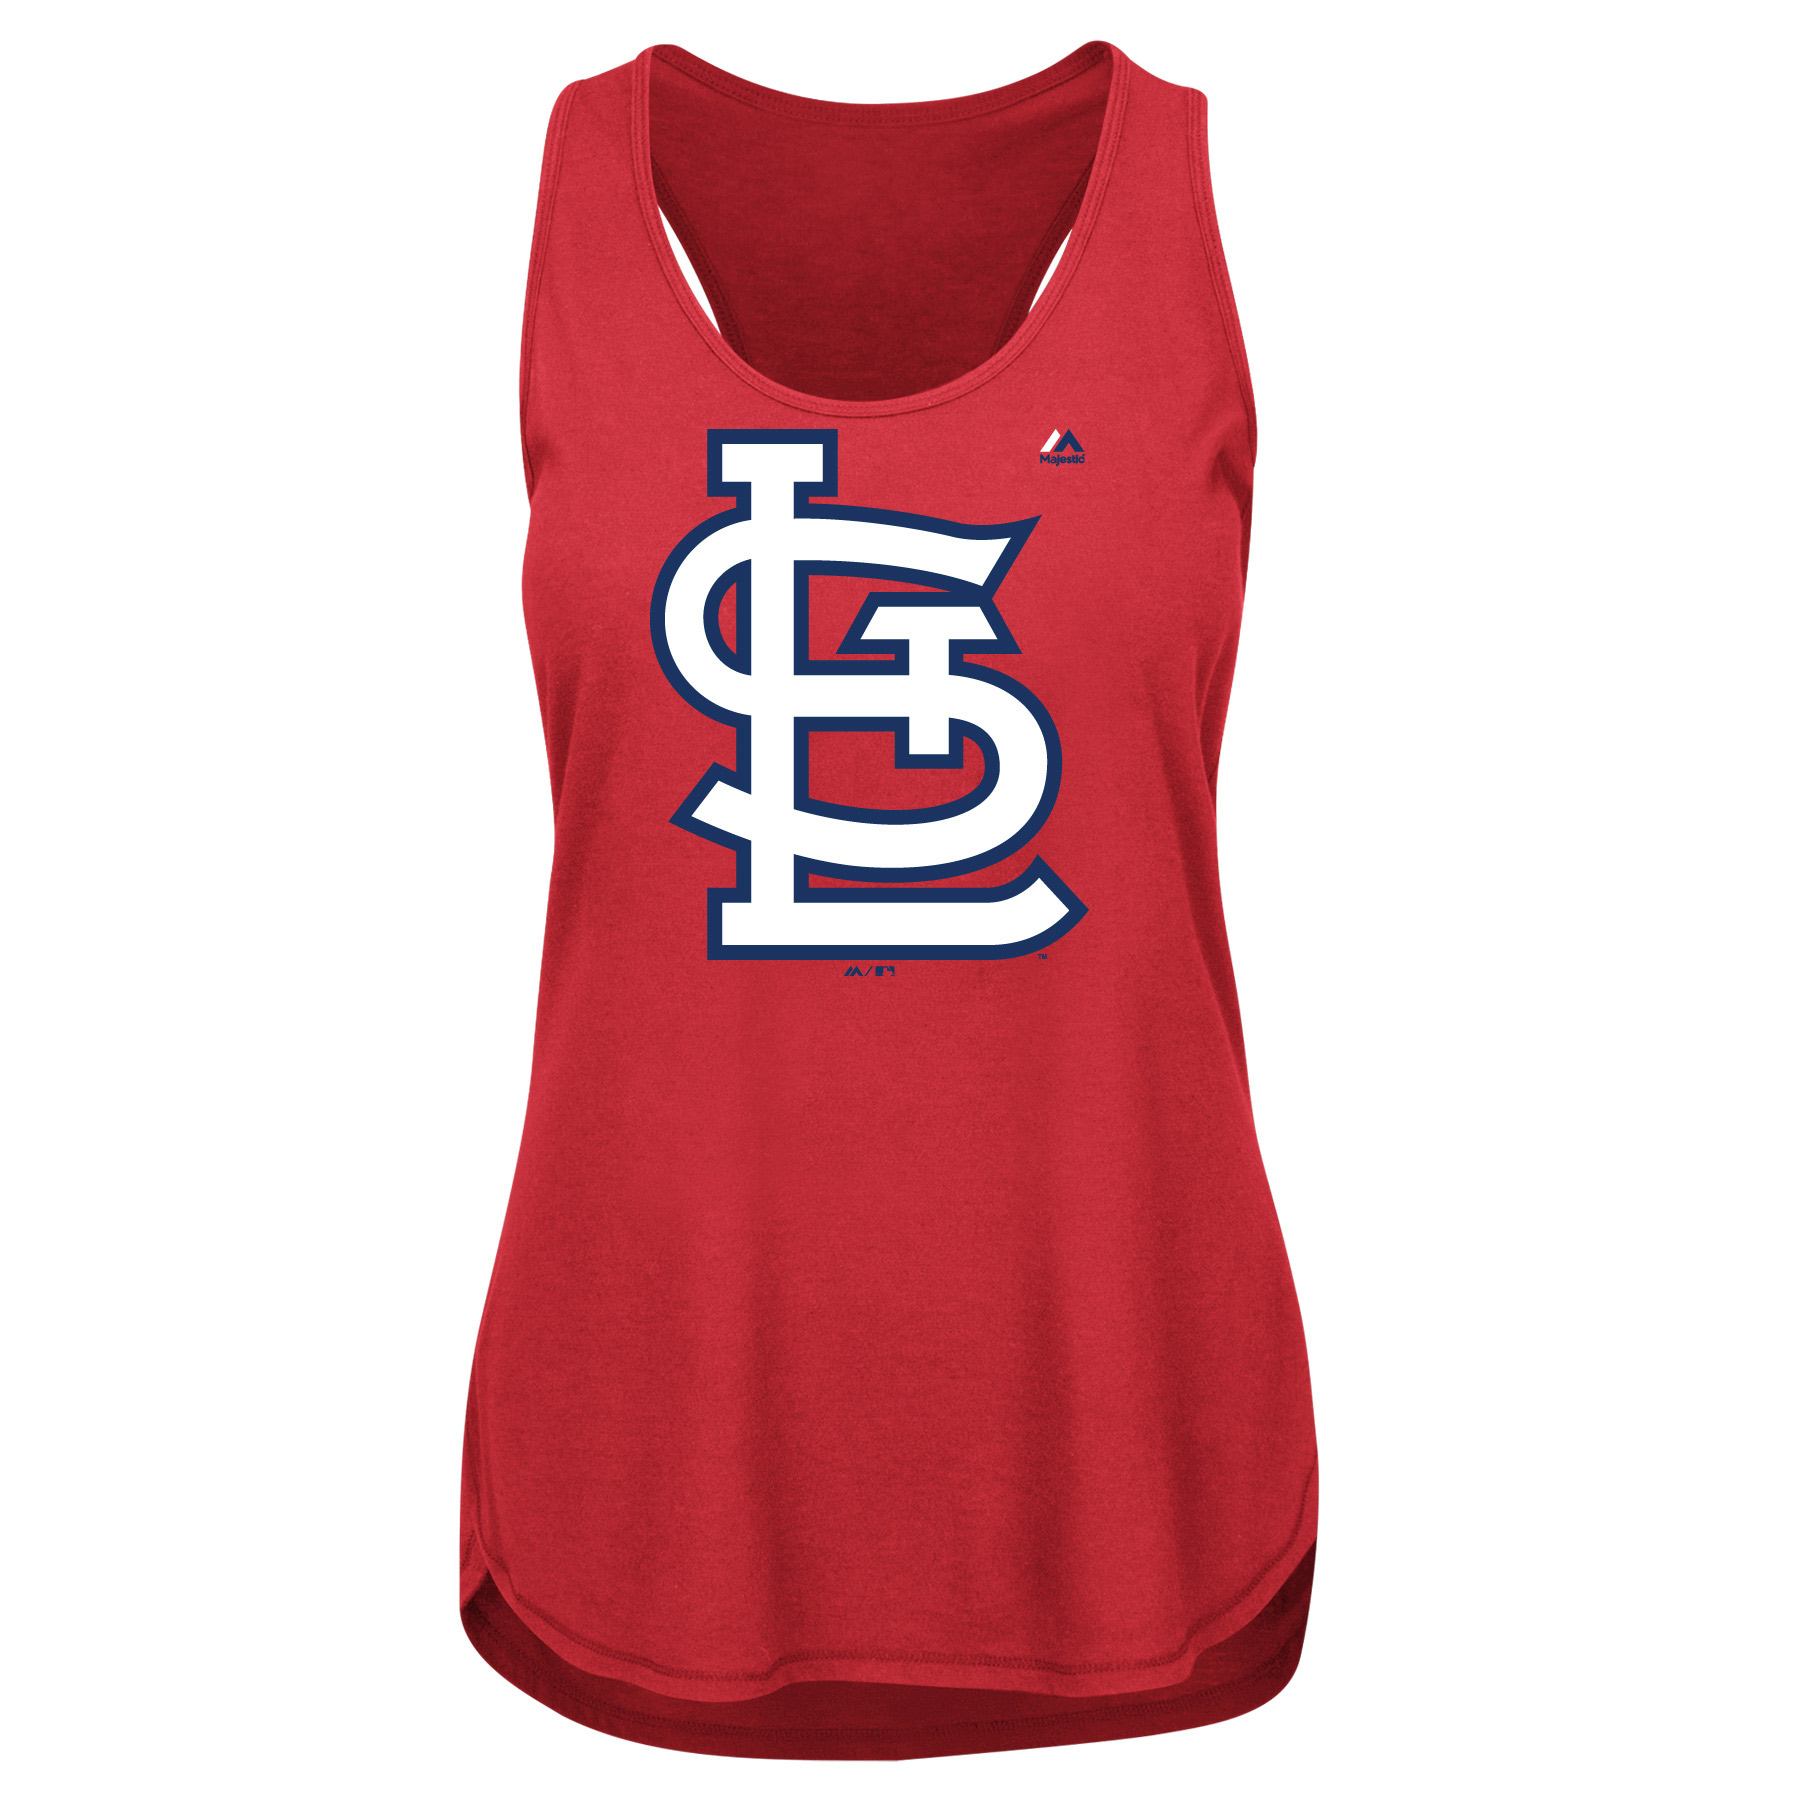 St. Louis Cardinals Majestic Women's Plus Size Tested Tank Top - Red